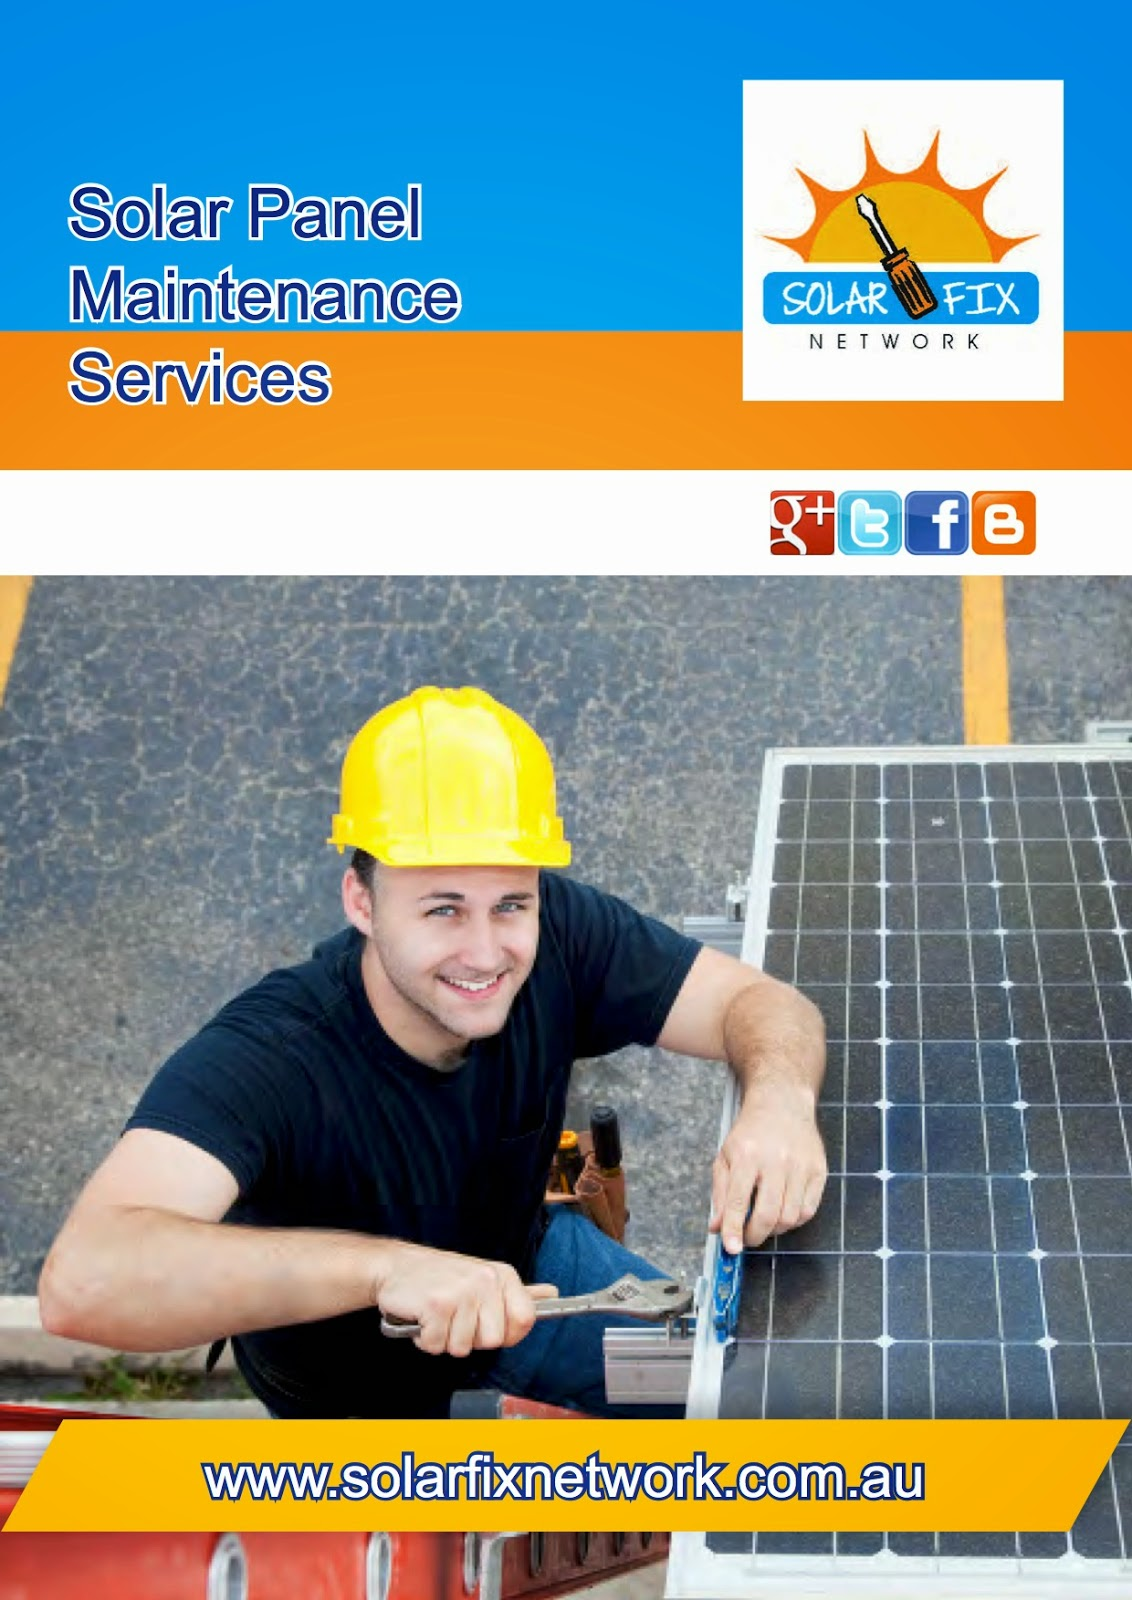 At Solar Fix Network, we offer Adelaide homeowners a comprehensive solar panel inspection, maintenance and cleaning service